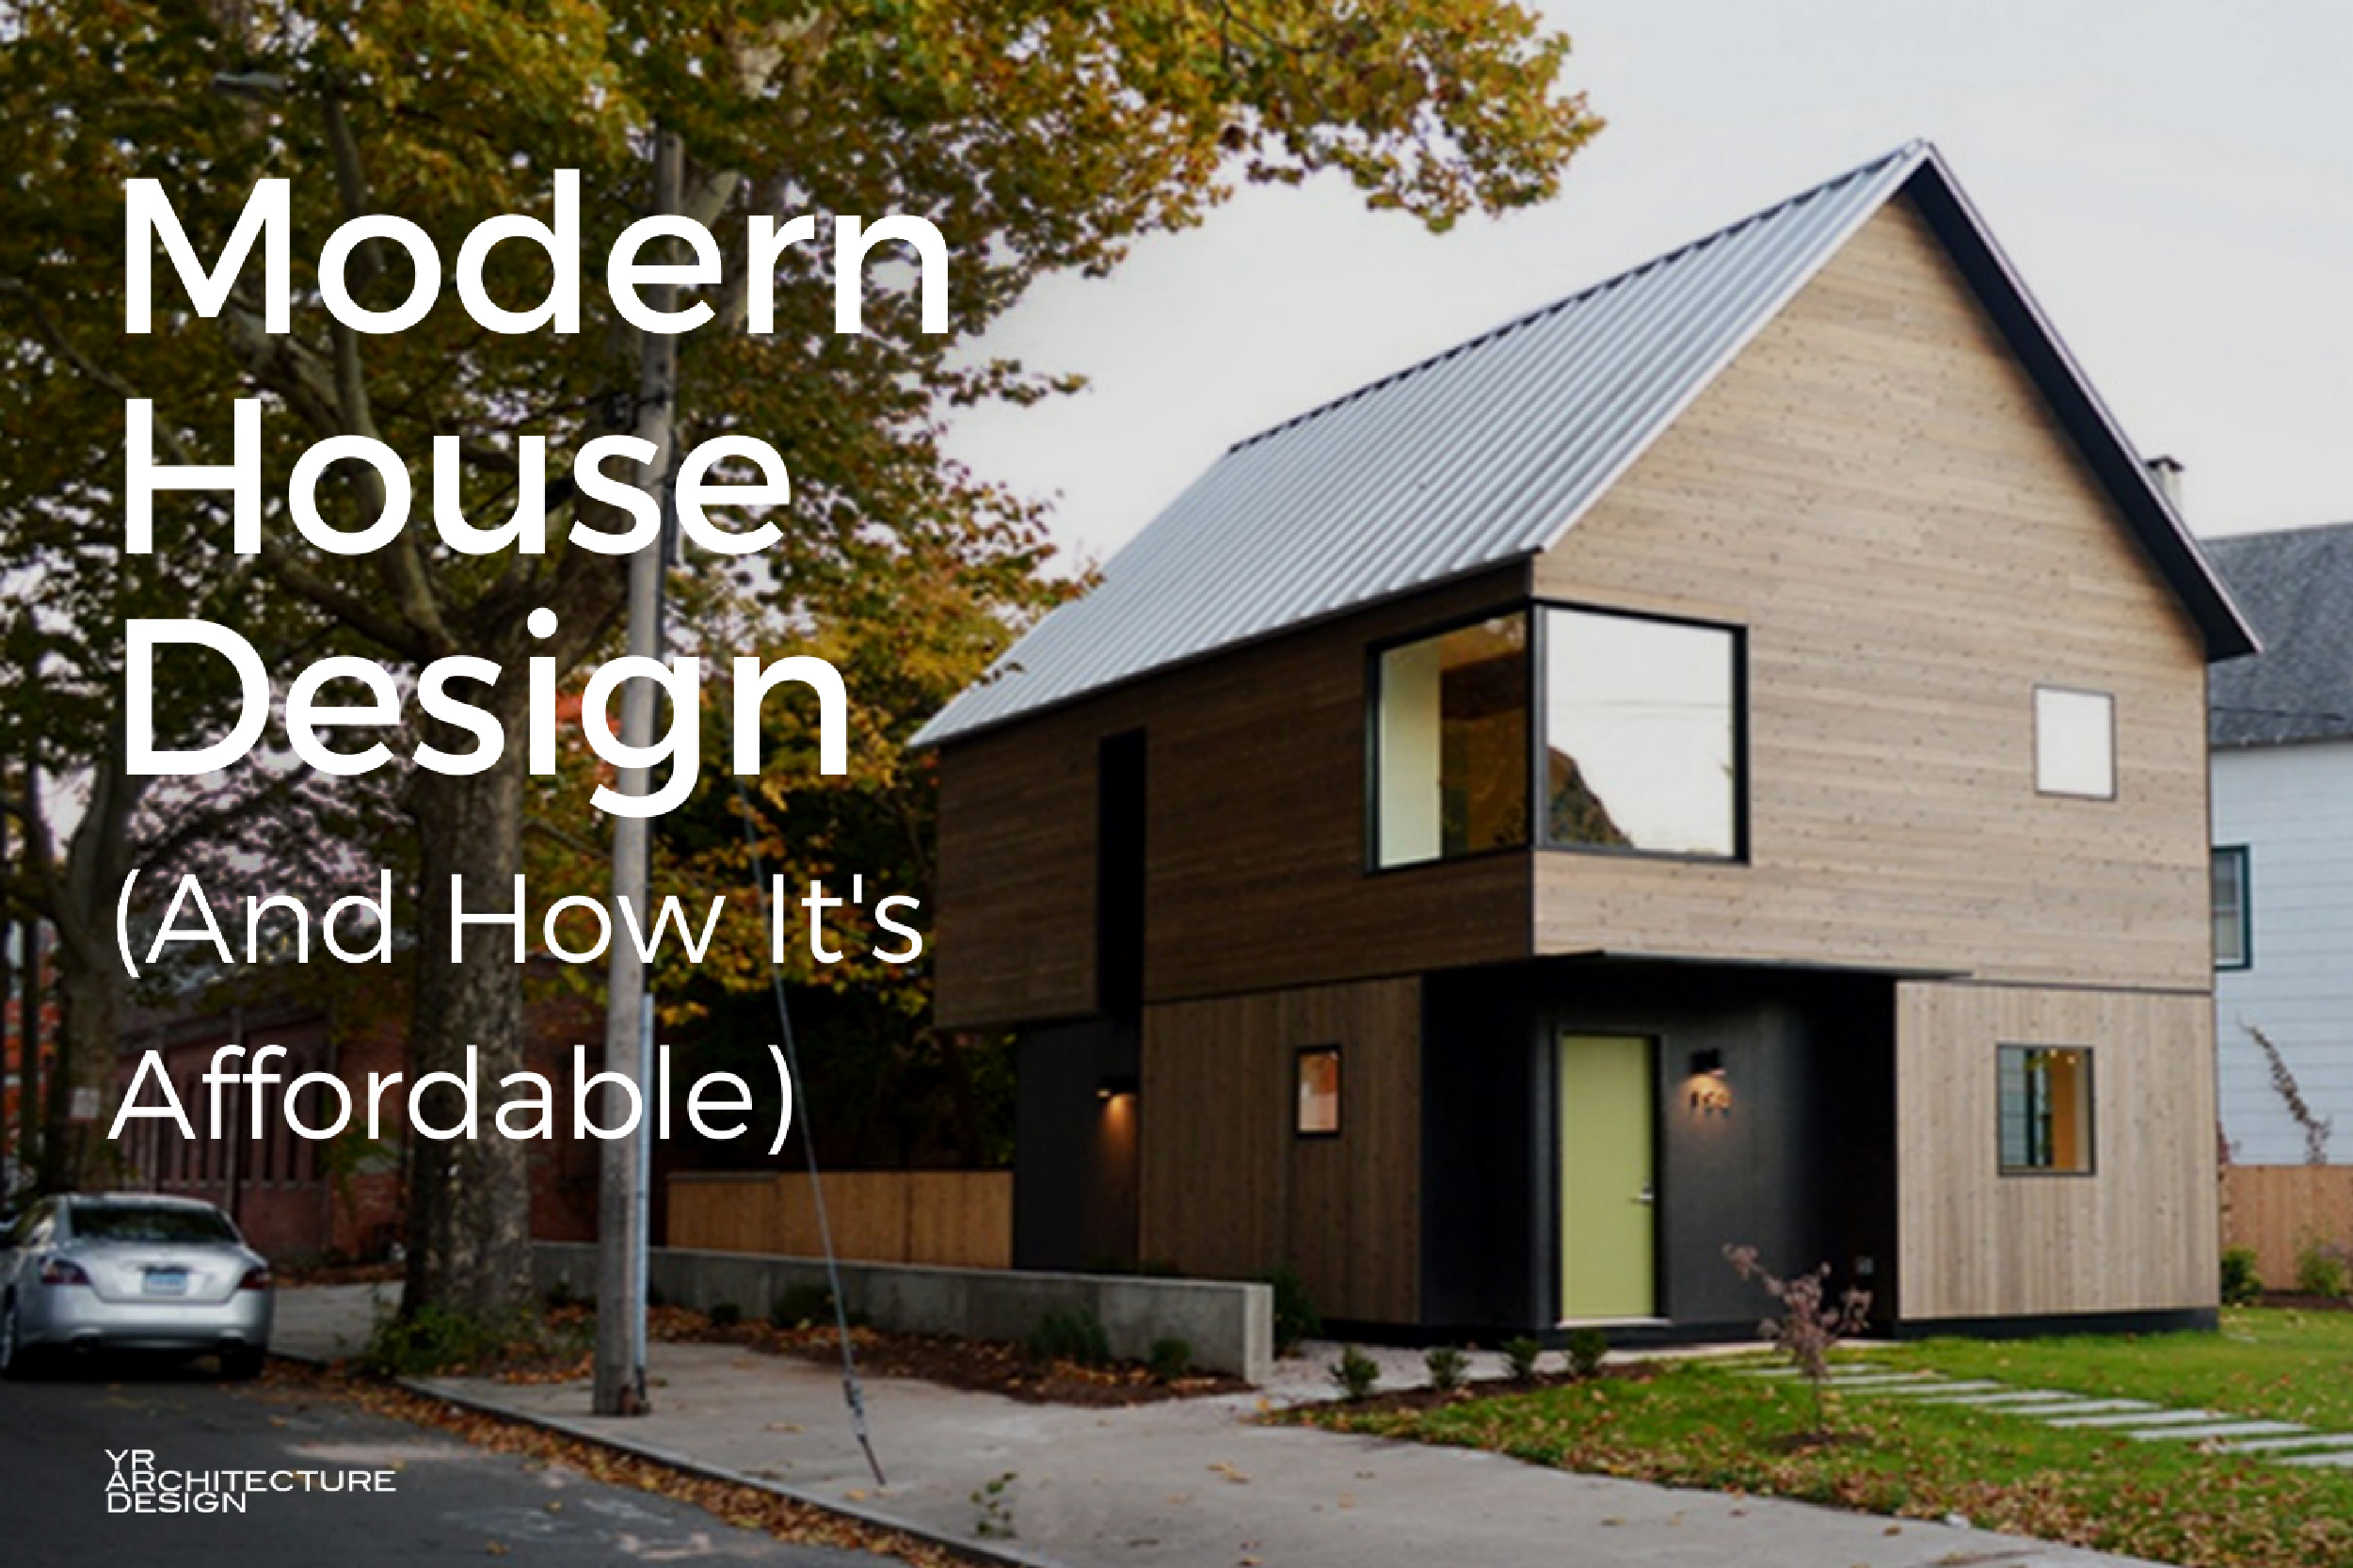 Amazing Affordable Modern House Design